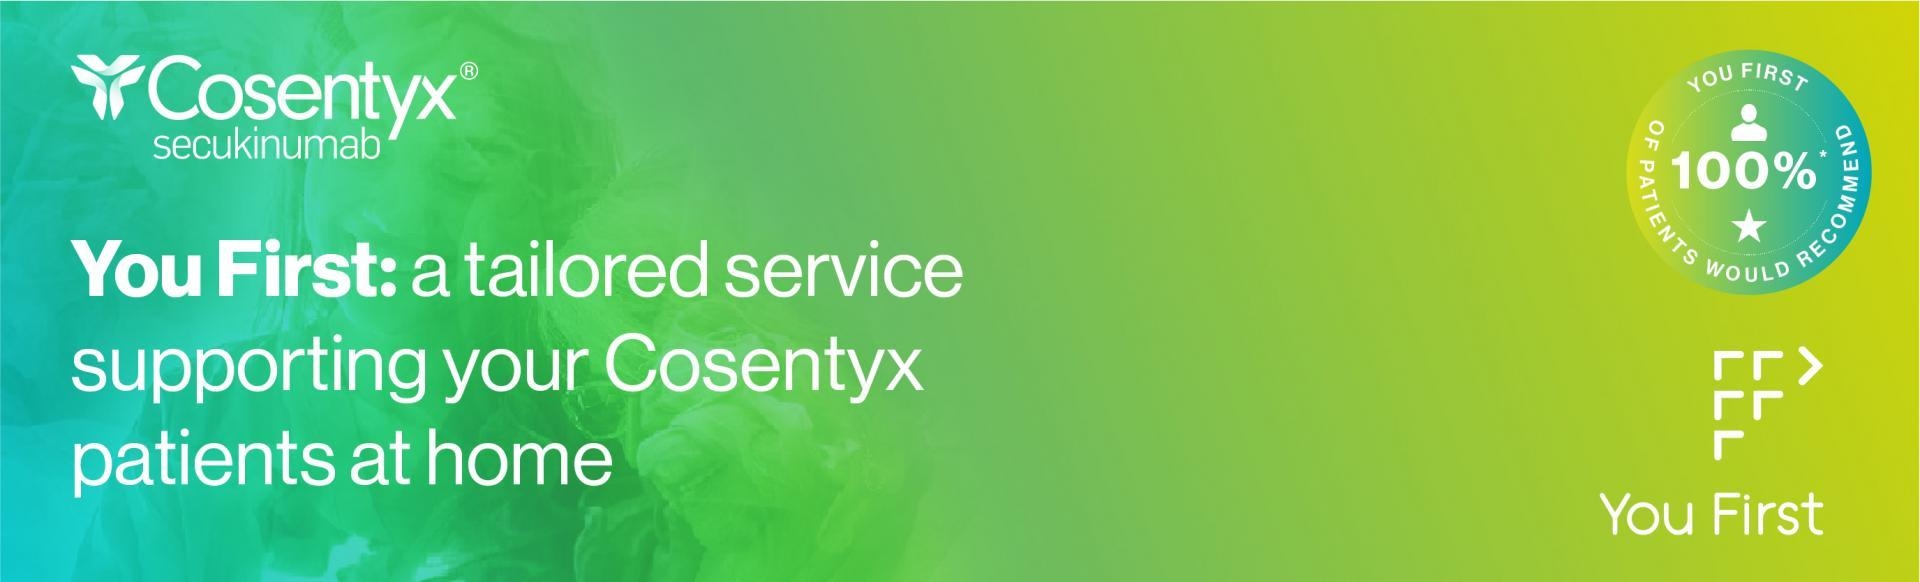 Top banner. You First: a tailored service supporting your Cosentyx patients at home